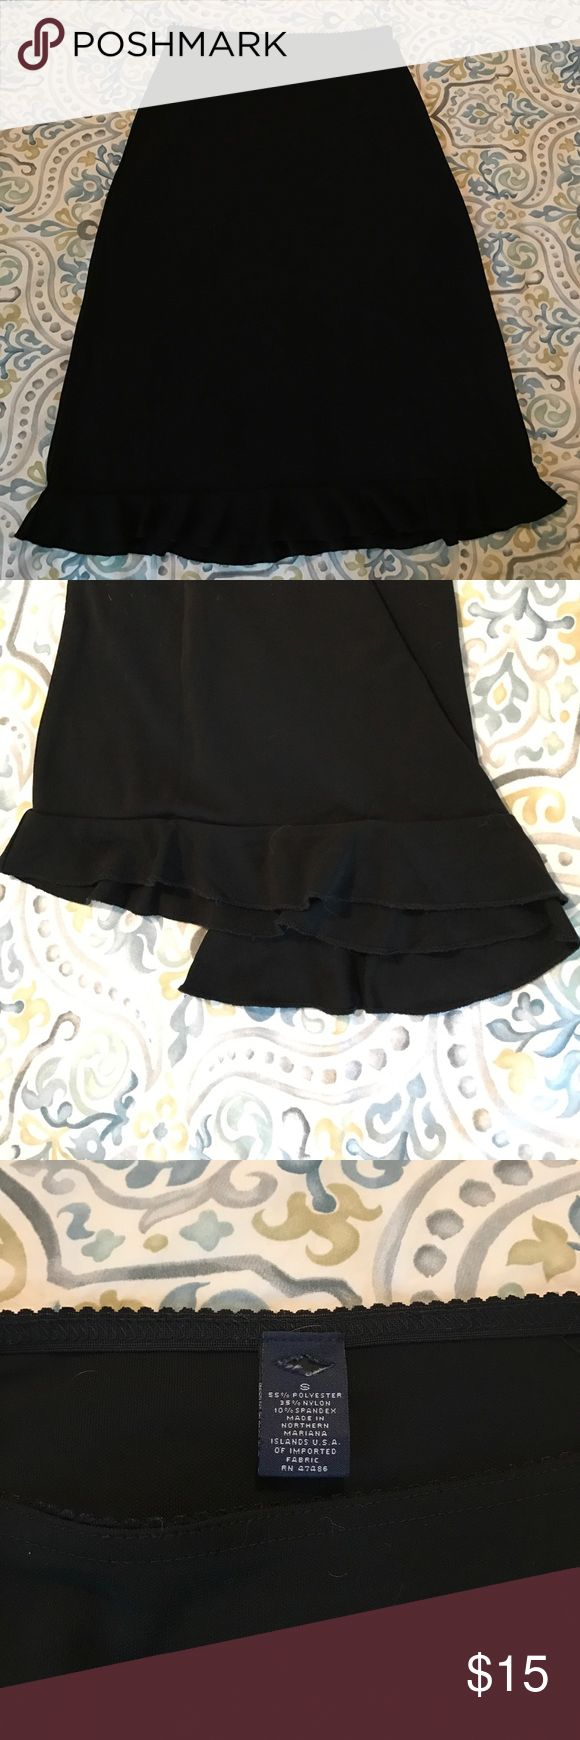 "Black Ruffle Skirt/Slip/Underskirt Black GAP slit/underskirt. A little too sheer to wear as a standalone skirt but can be paired with opaque black tights to wear without over Skirt! Use under a skirt to give a fun and flirt flare! Ruffles at bottom. Stretchy waistband 12.5"" across, 16"" across at hip, 22"" long from top of waist to top of ruffle, then ruffle adds another 2"" of length. Purchased at an outlet store which is why brand is cut out. No flaws. Feel free to ask any questions any make…"